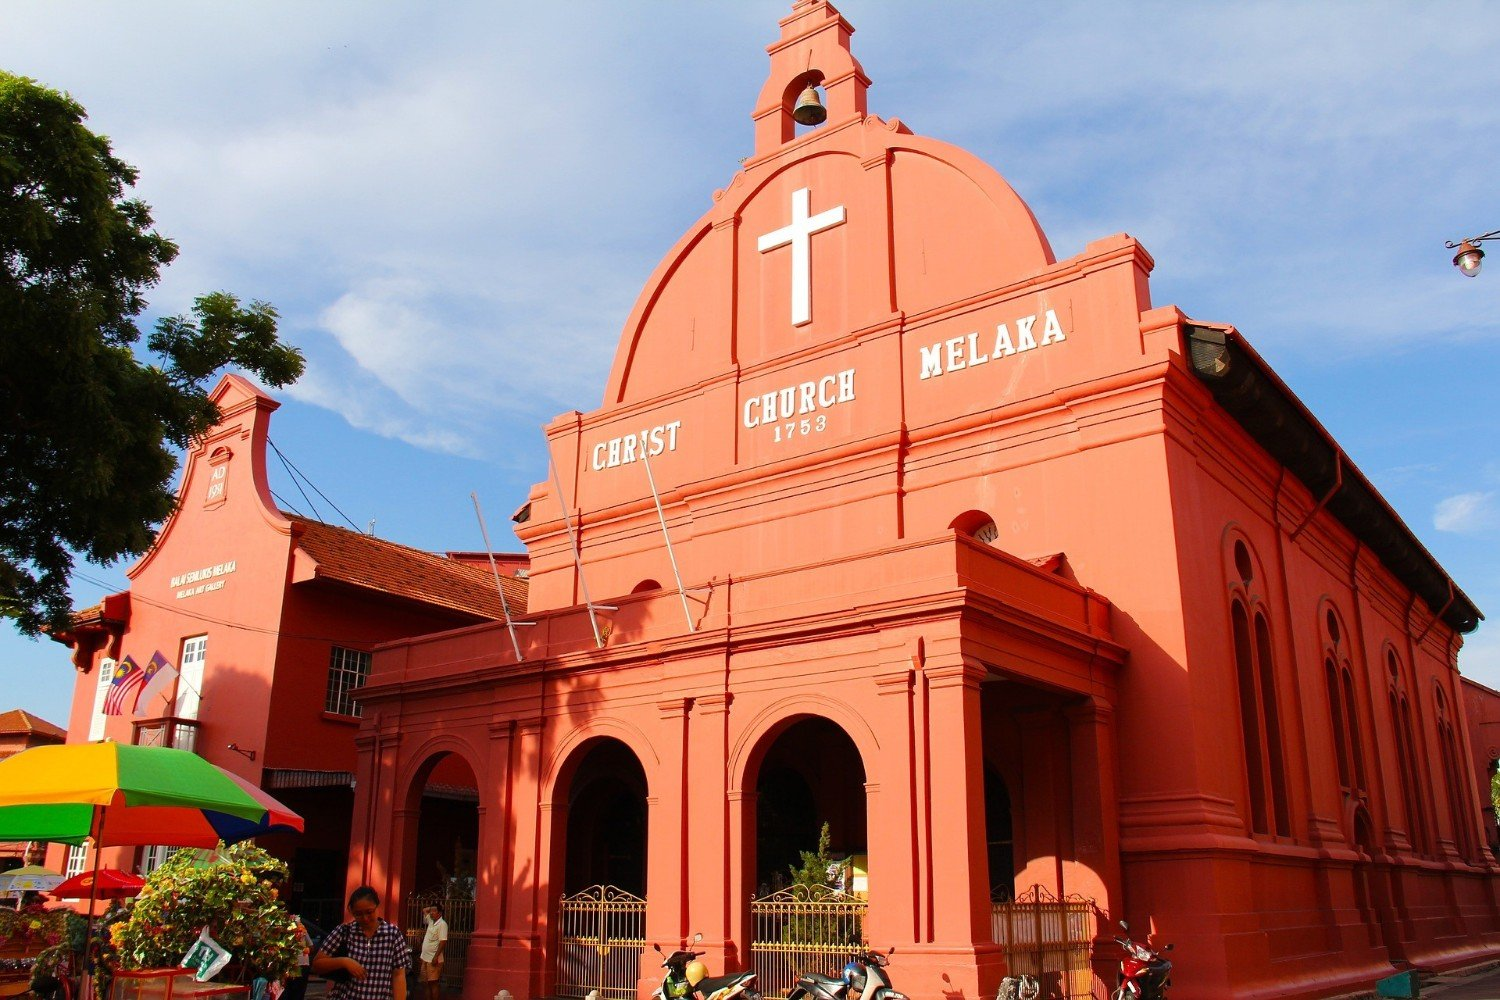 Christ Church in Melaka